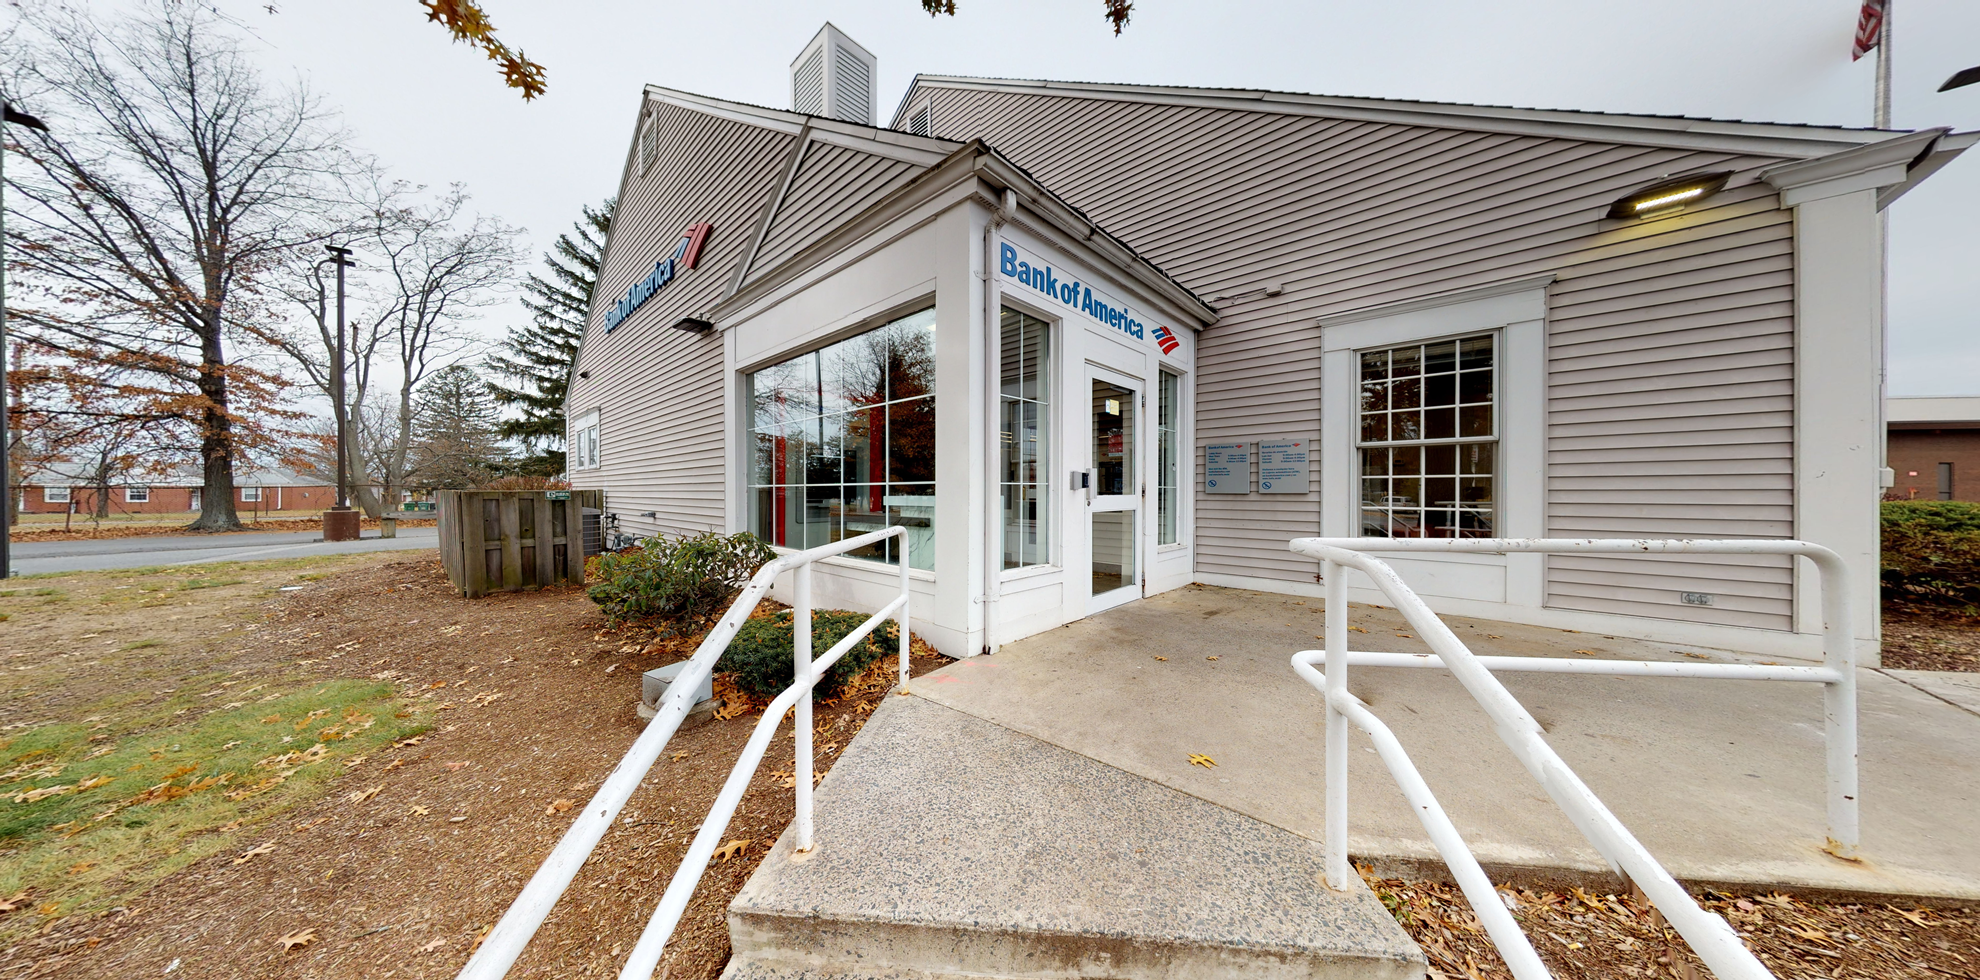 Bank of America financial center with drive-thru ATM   1316 Carew St, Springfield, MA 01104